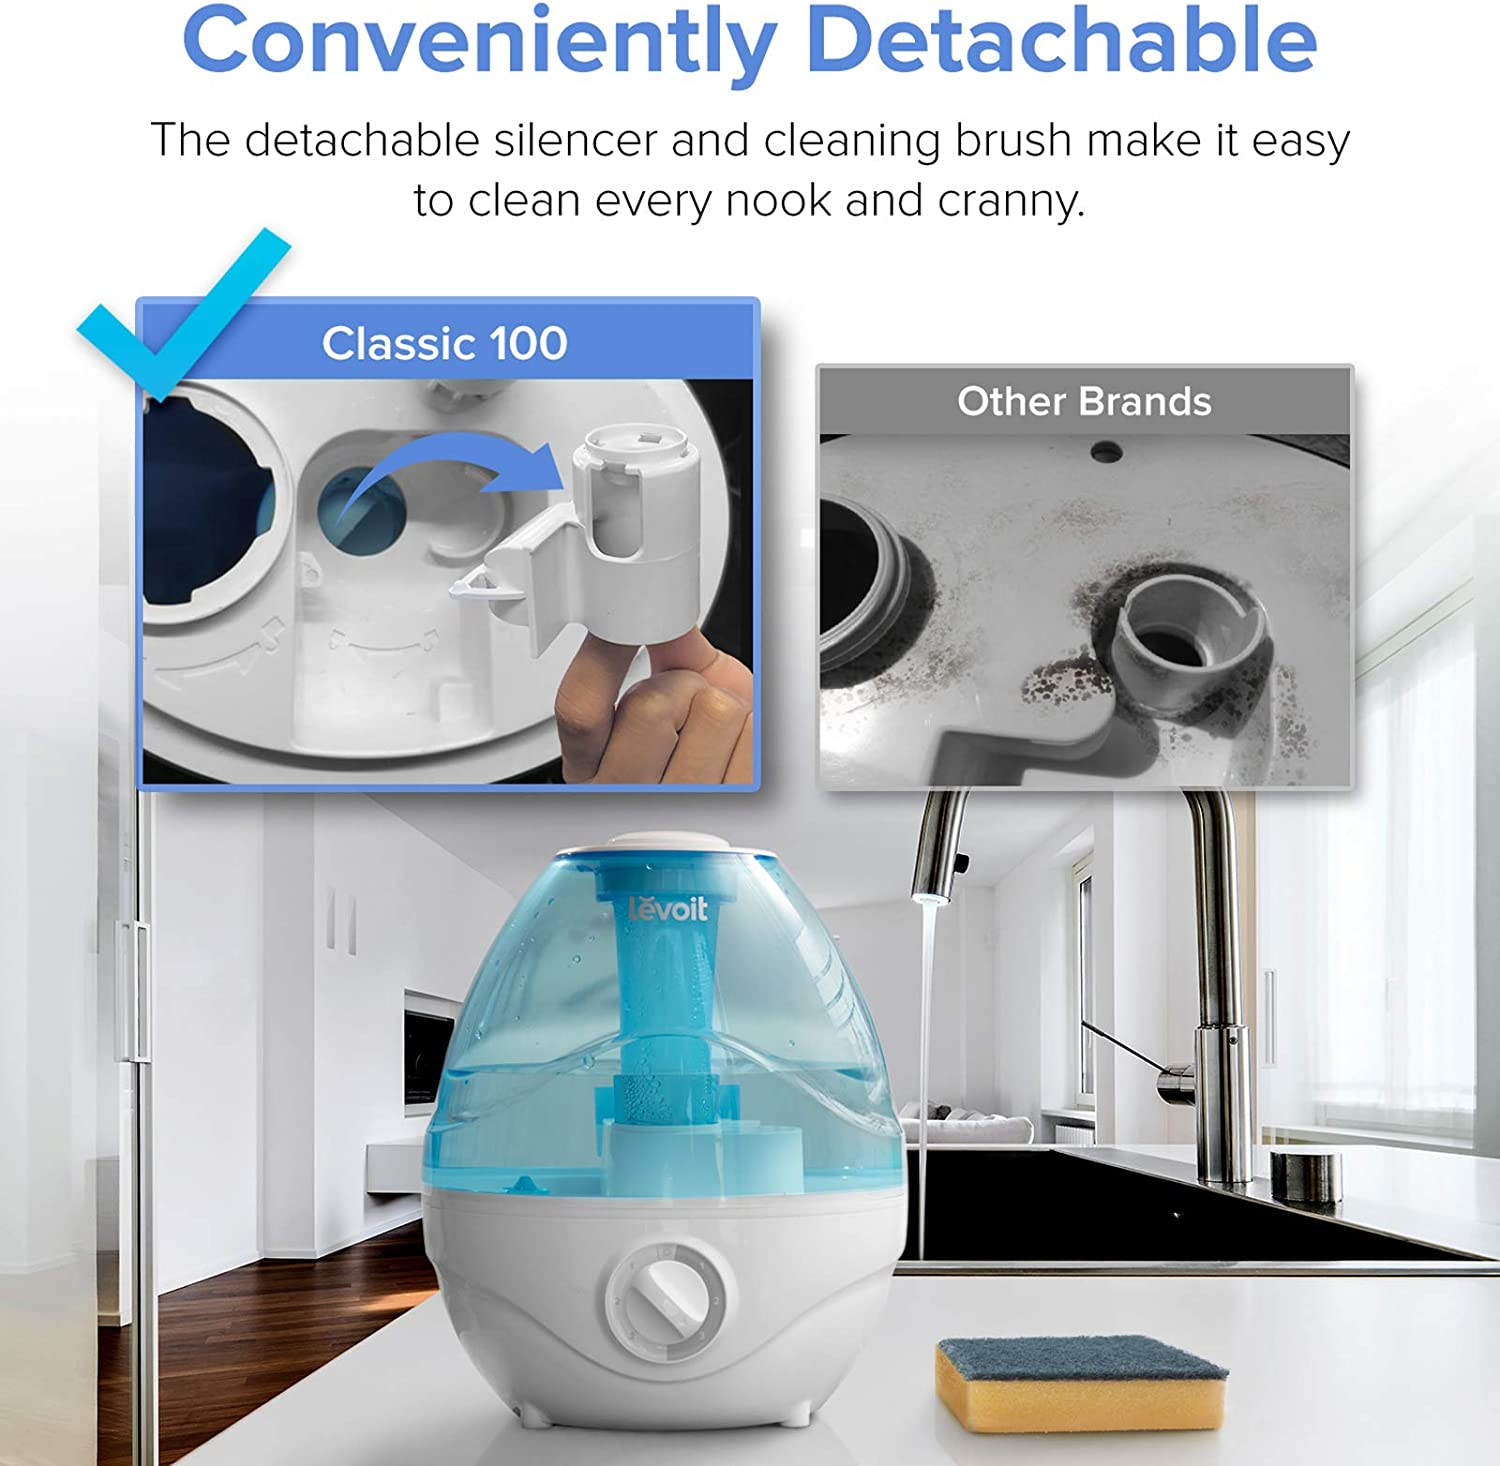 Levoit 2400ml Humidifiers for Bedroom, Ultrasonic Cool Mist Humidifier for Baby, BPA Free, 24 Working Hours, Night Light, Waterless Auto Off, 24dB